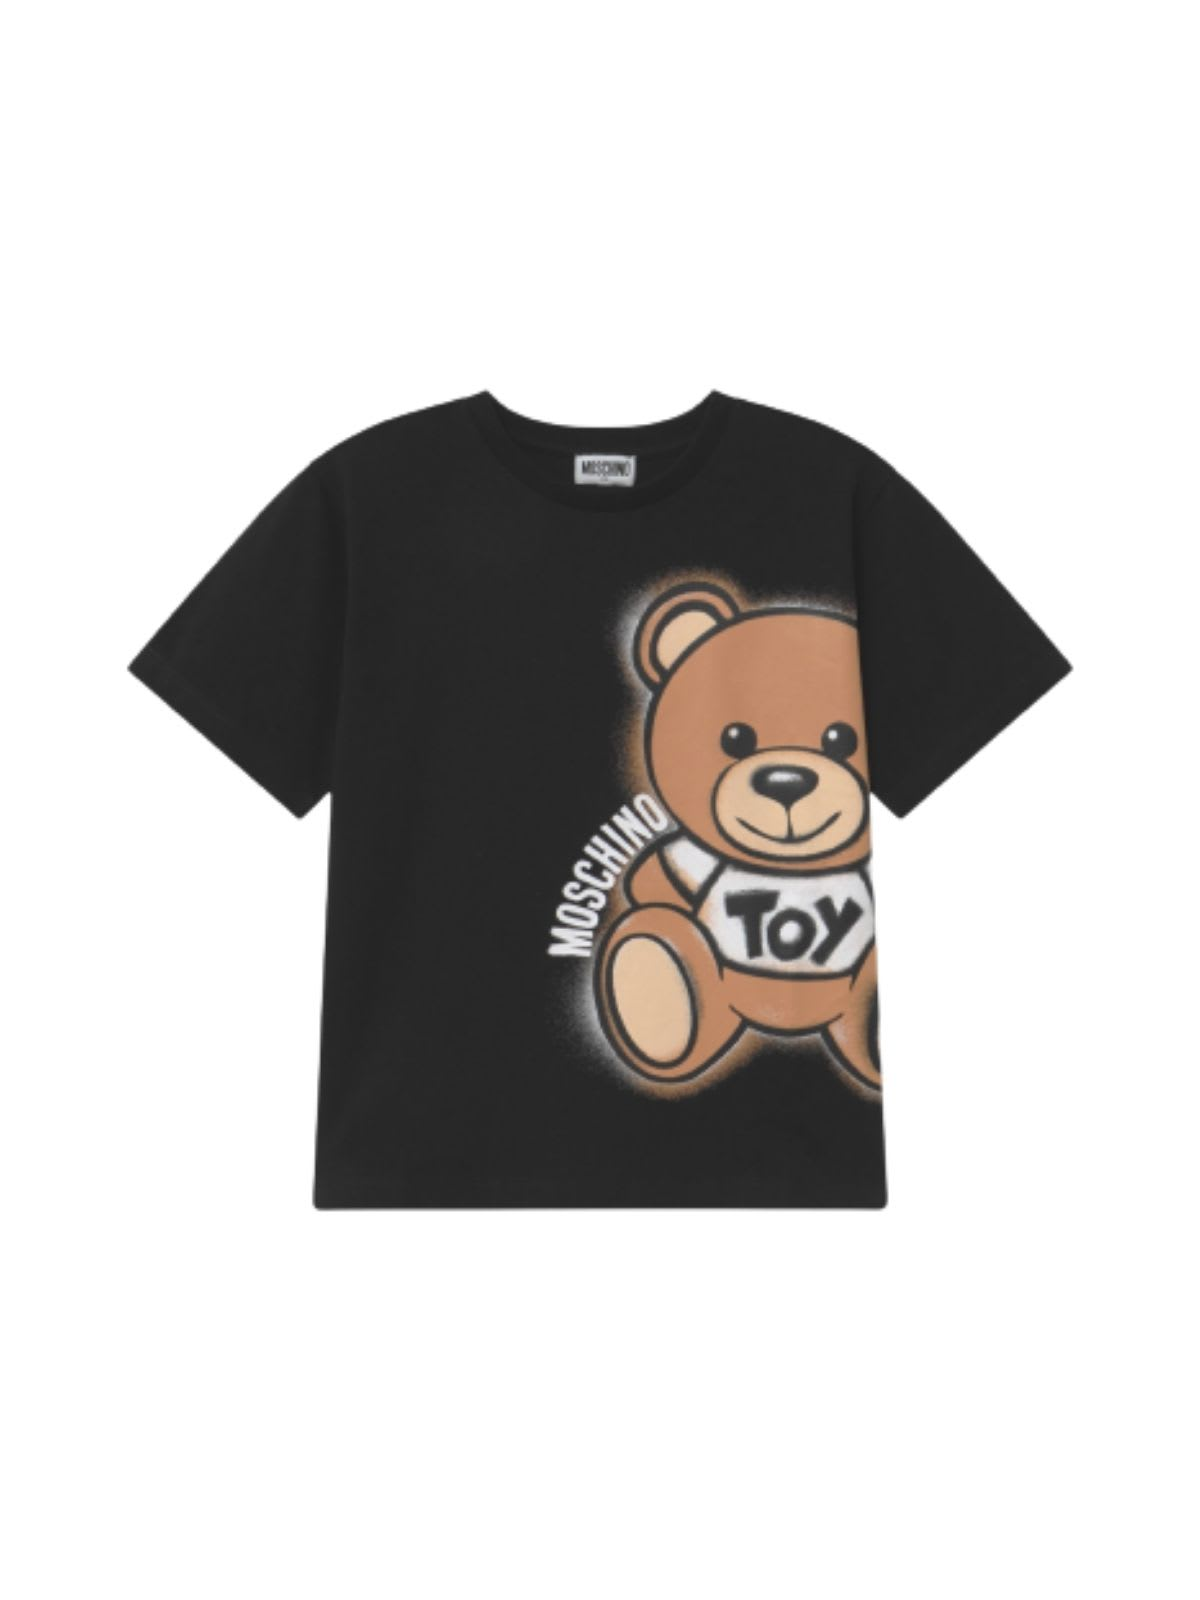 Moschino MAXI T-SHIRT W/SIDE TEDDY